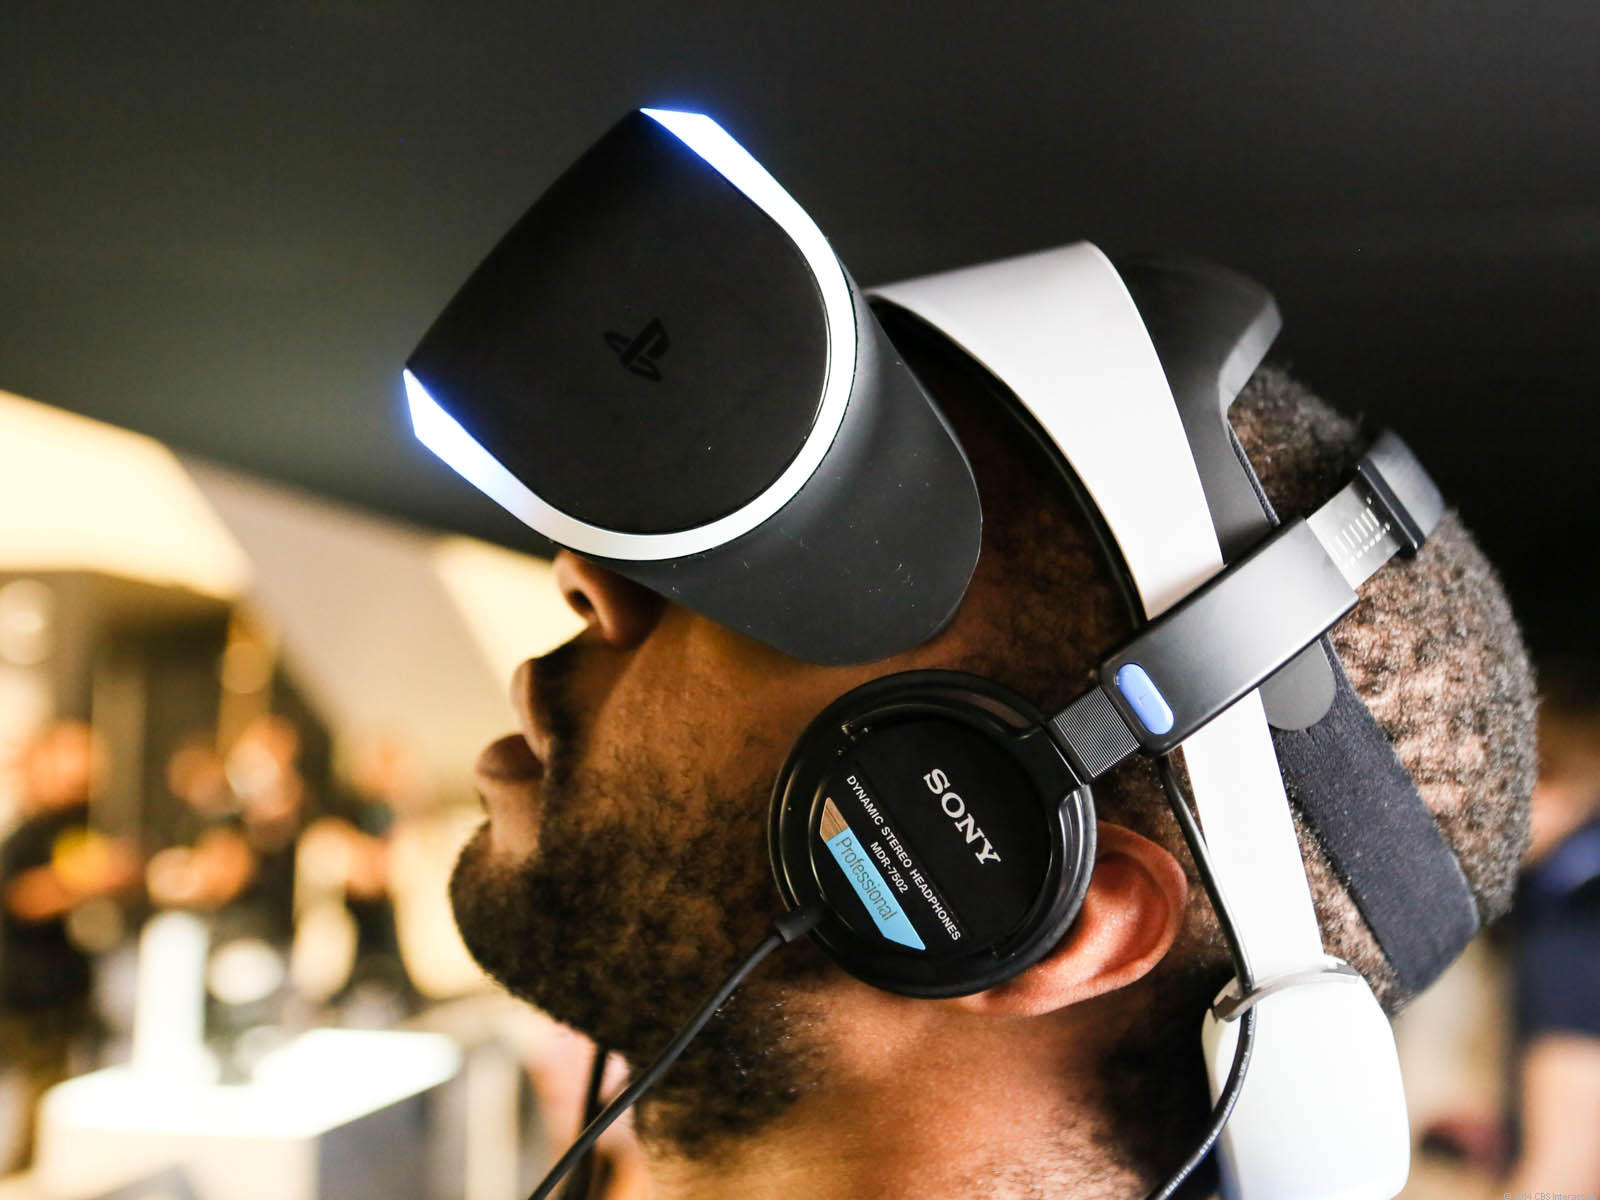 Virtual reality is taking over the video game industry